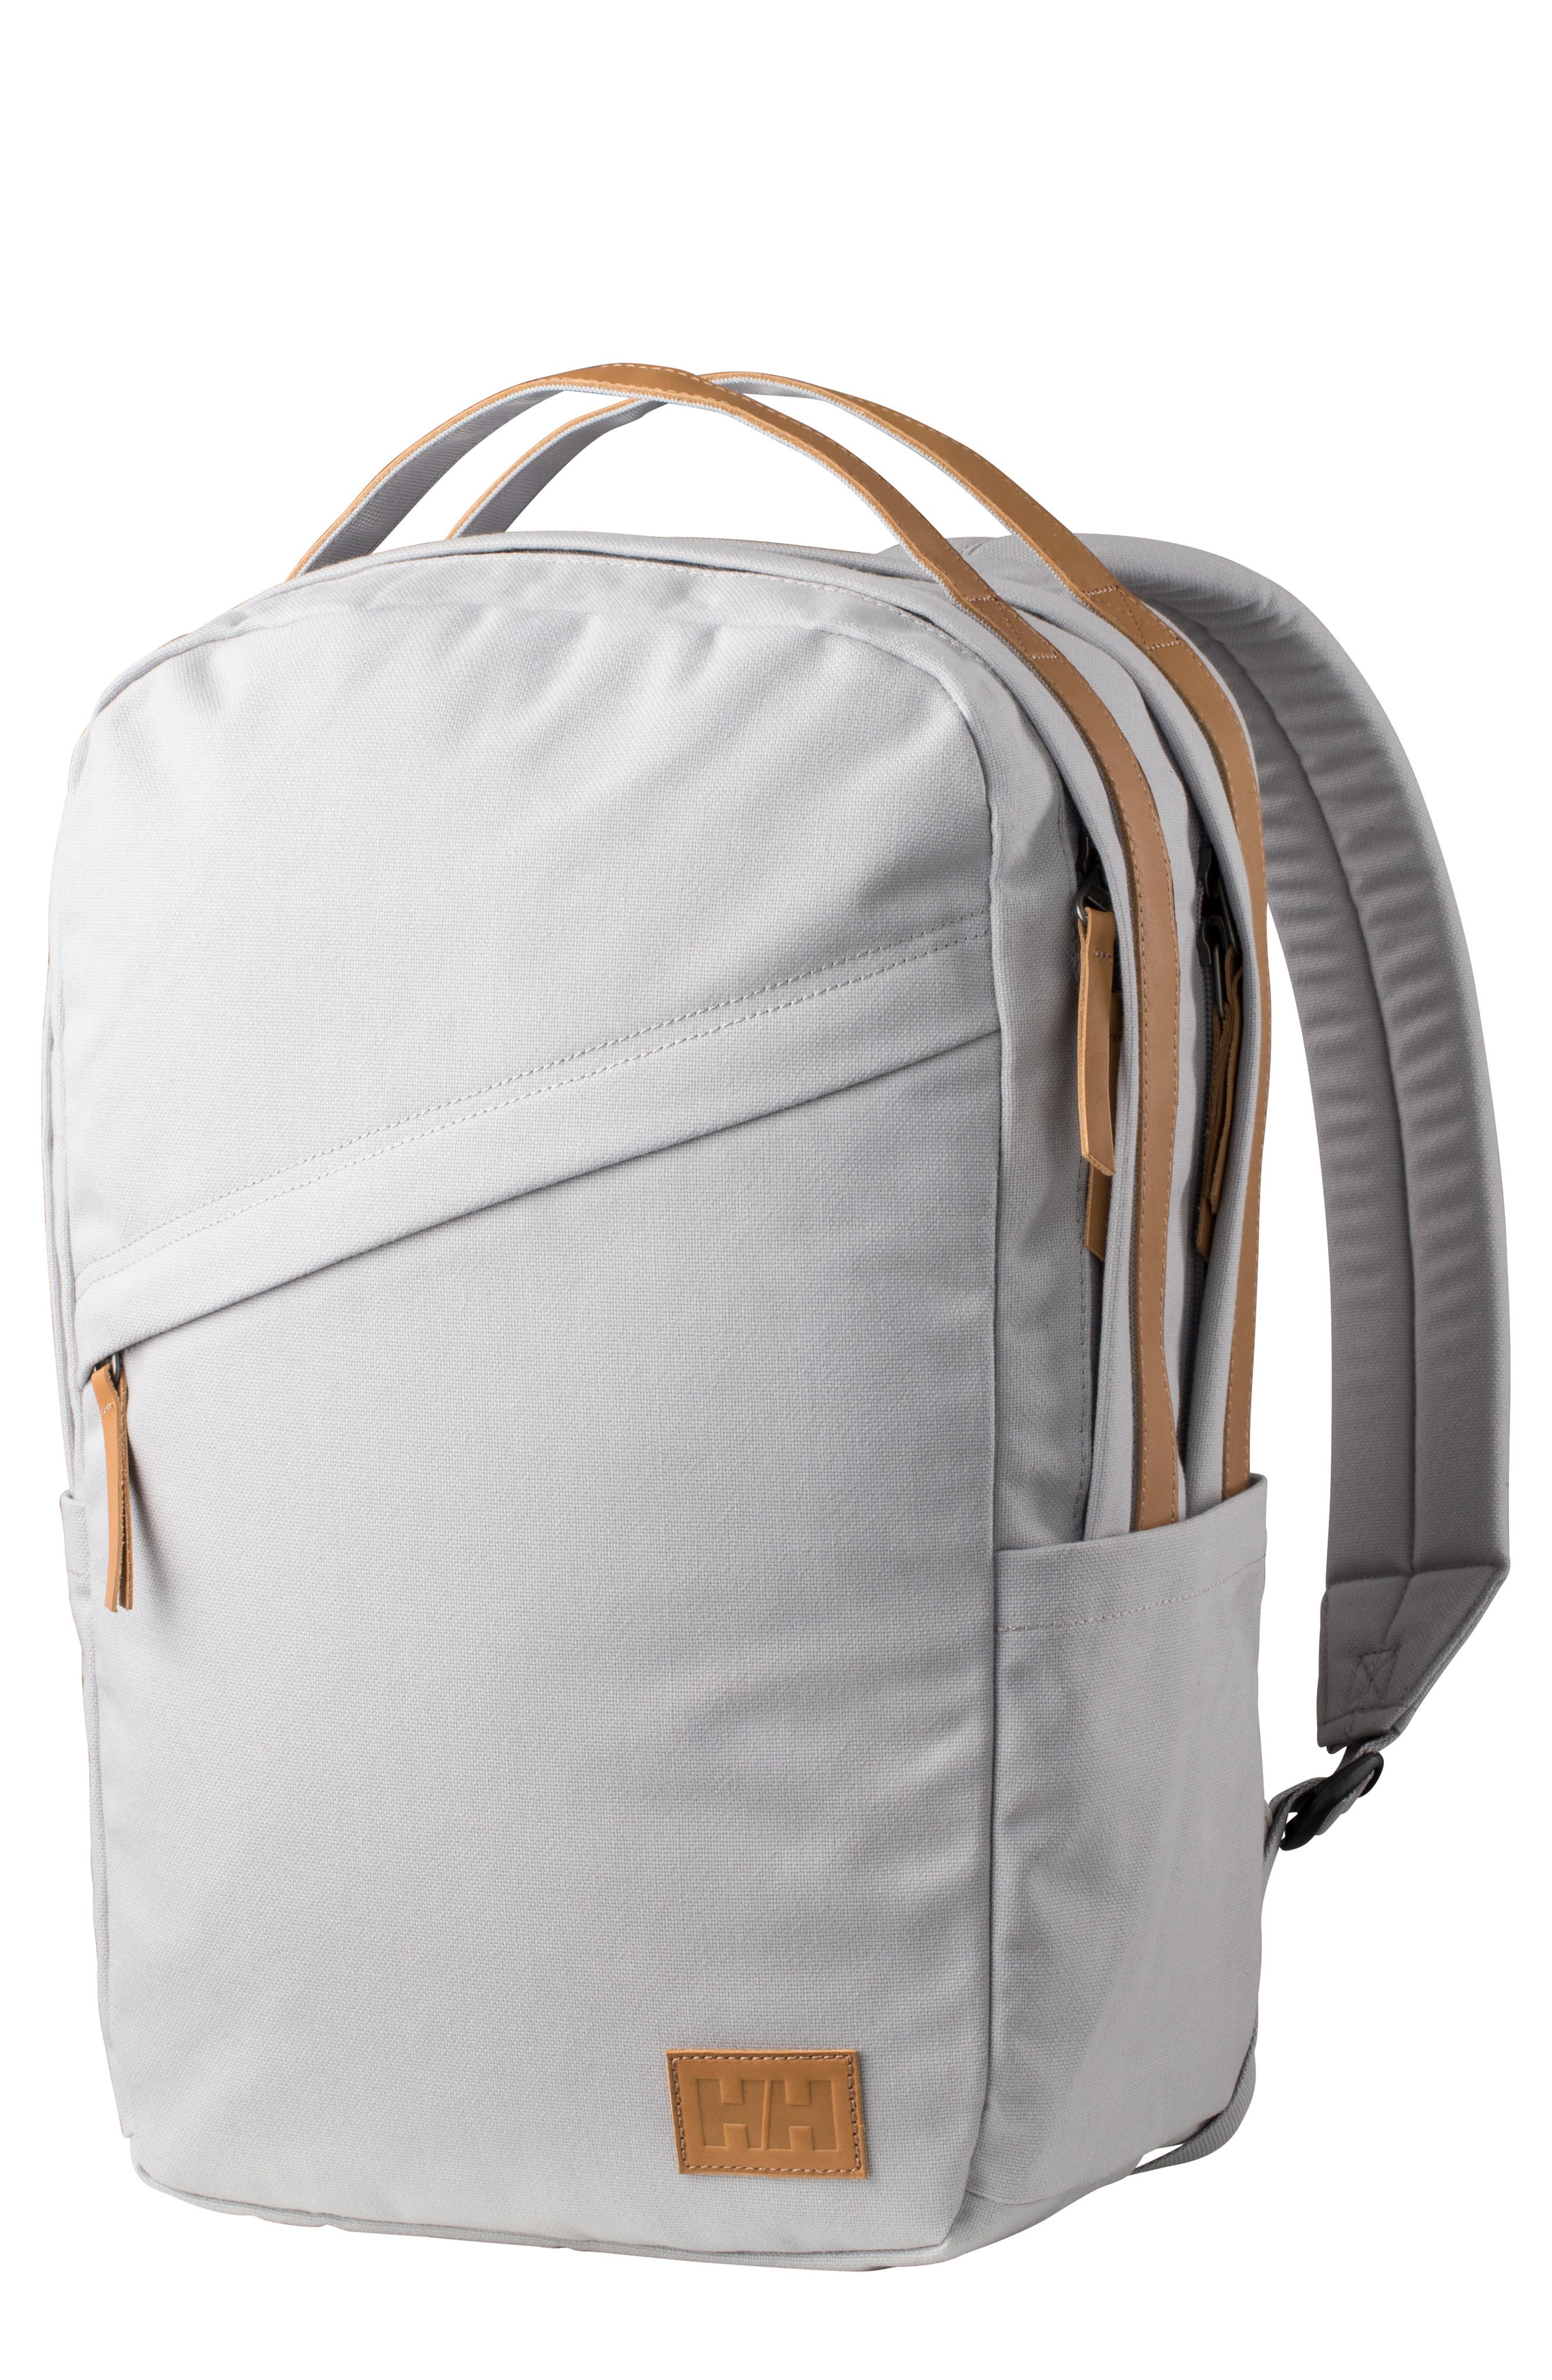 Helly Hansen Copenhagen Backpack - Grey